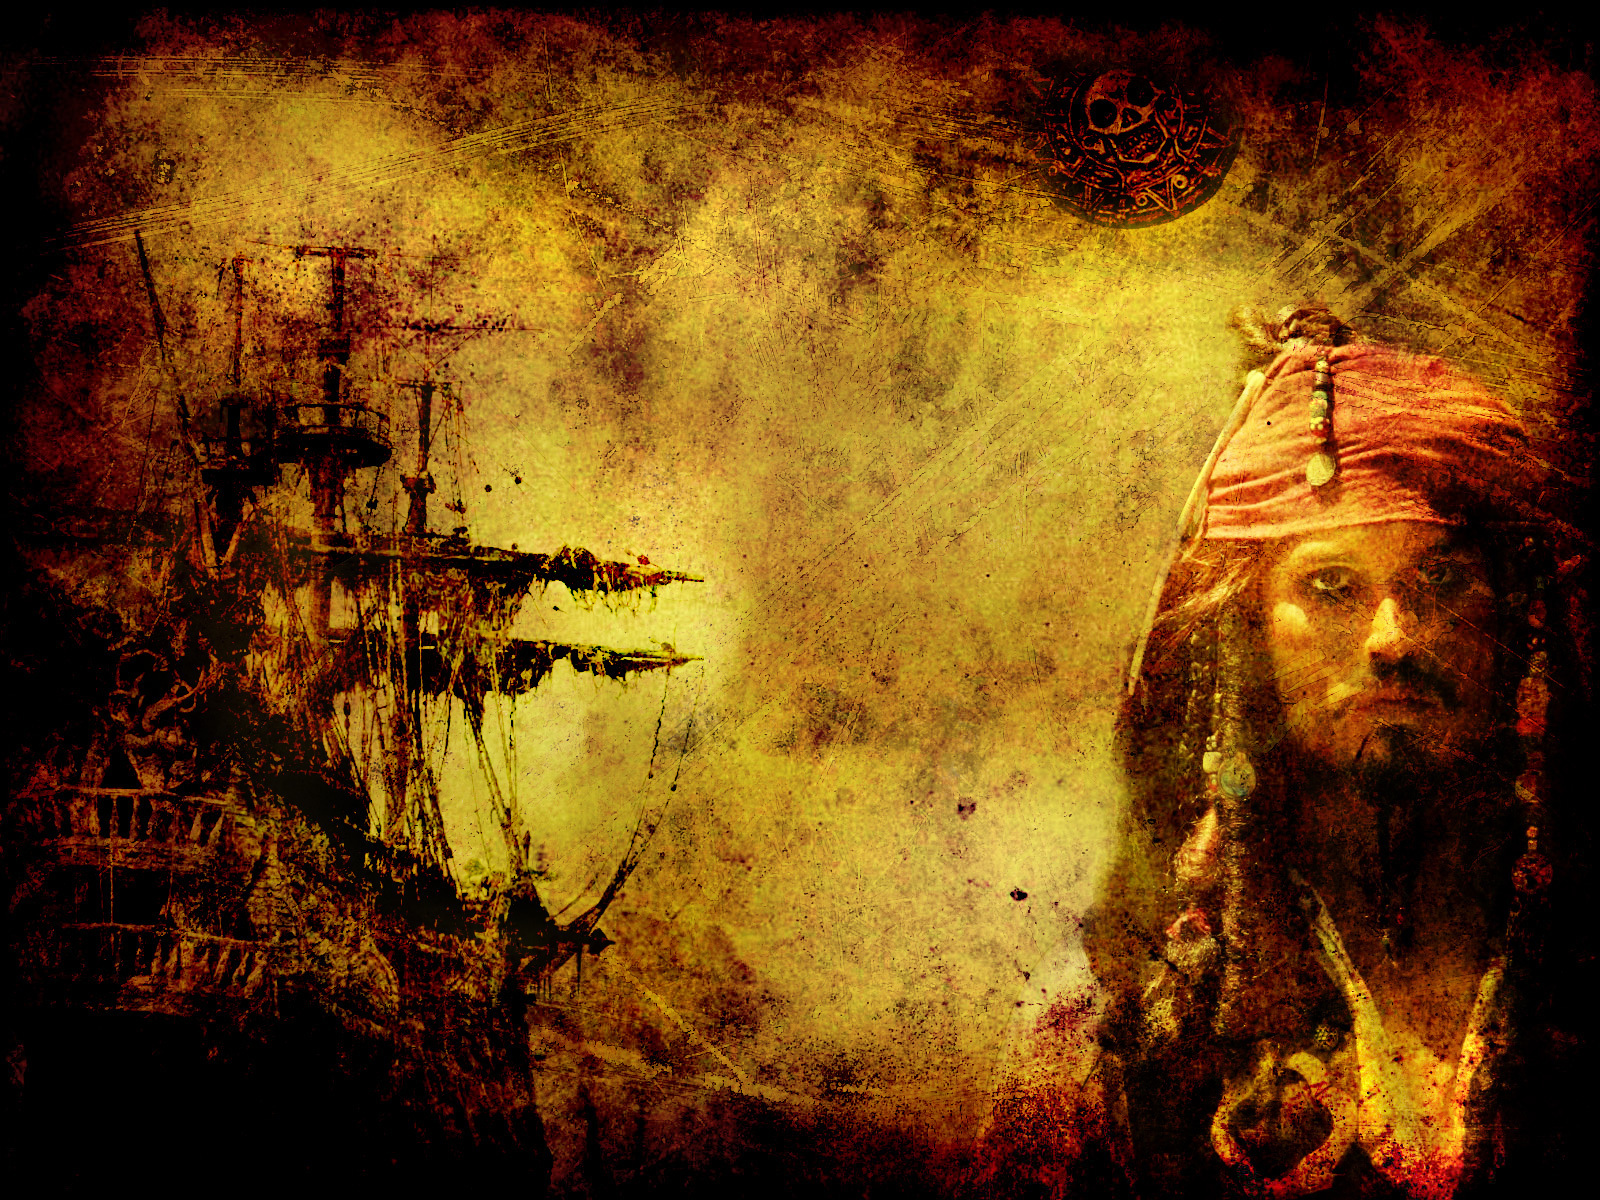 pirates of the caribbean images jack sparrow hd wallpaper and